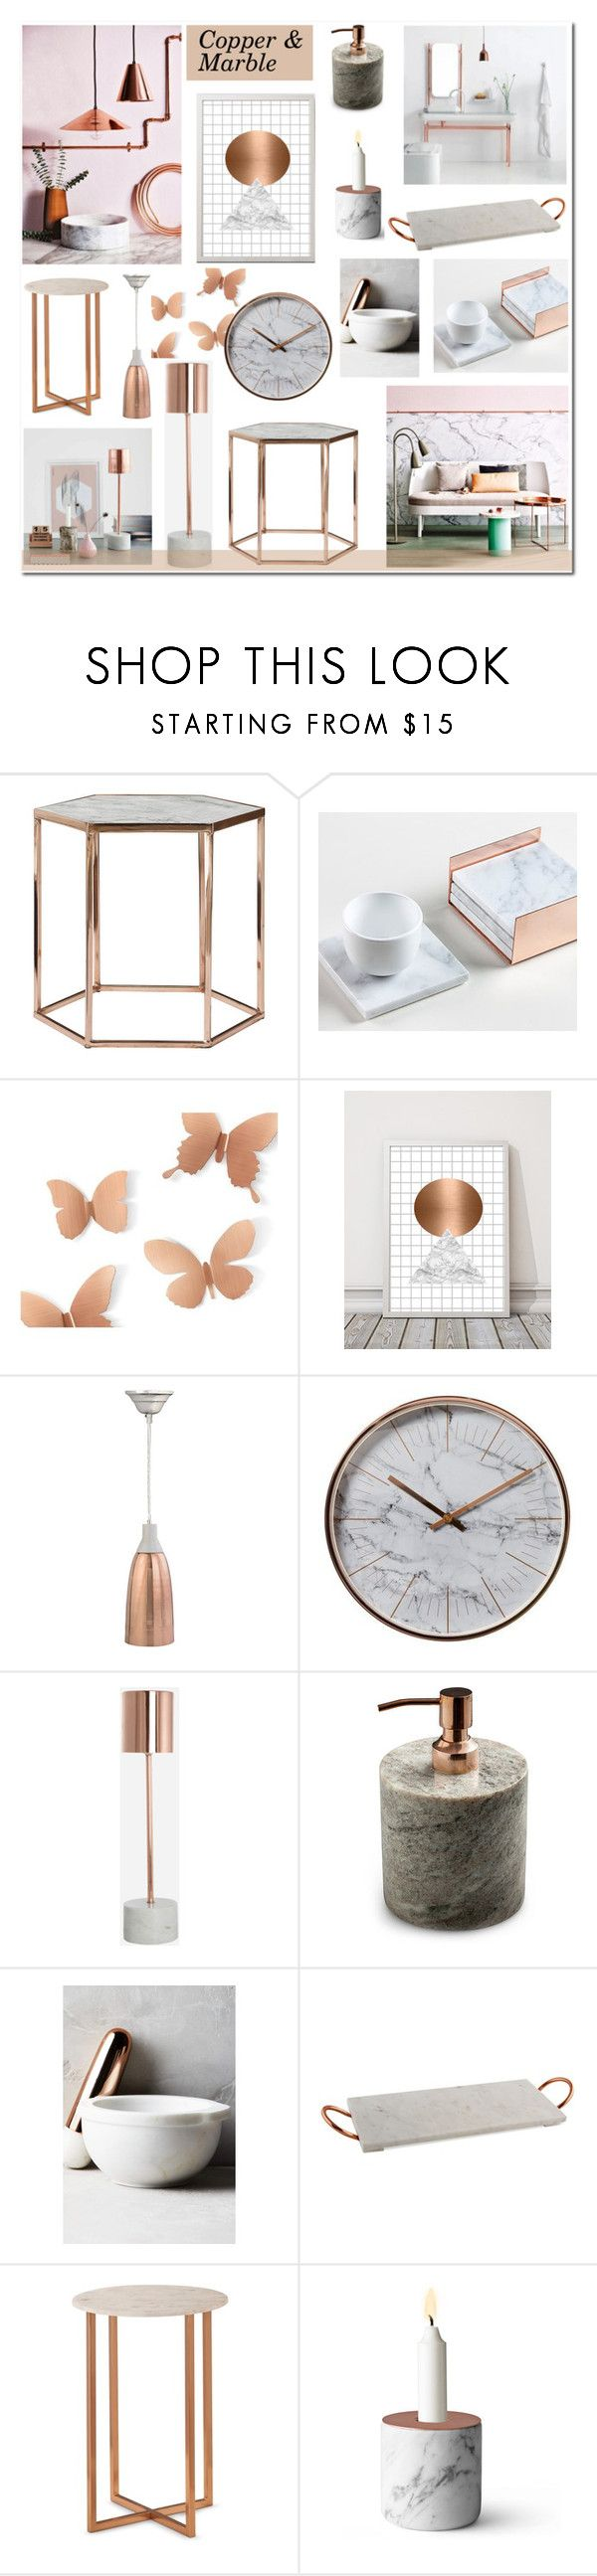 """Copper & Marble"" by anyasdesigns ❤ liked on Polyvore featuring interior, interiors, interior design, home, home decor, interior decorating, Umbra, Holly's House, Therapy and Nordstjerne"